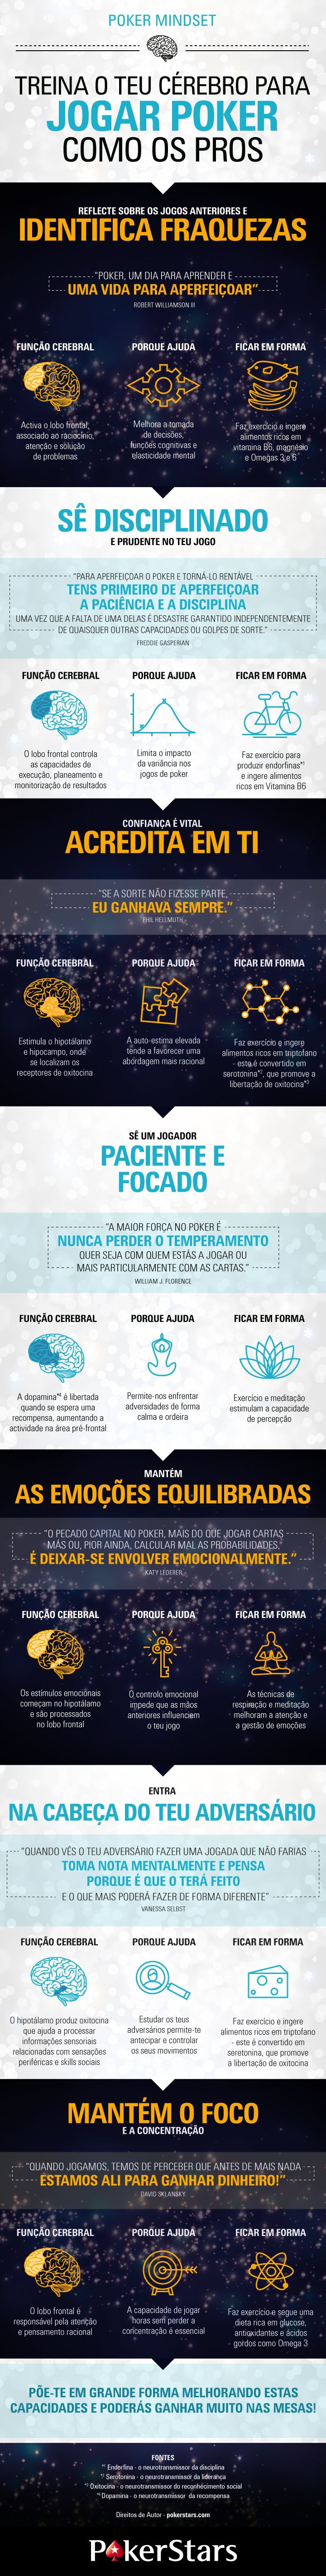 Aprende a Psicologia do Poker na IntelliPoker.pt